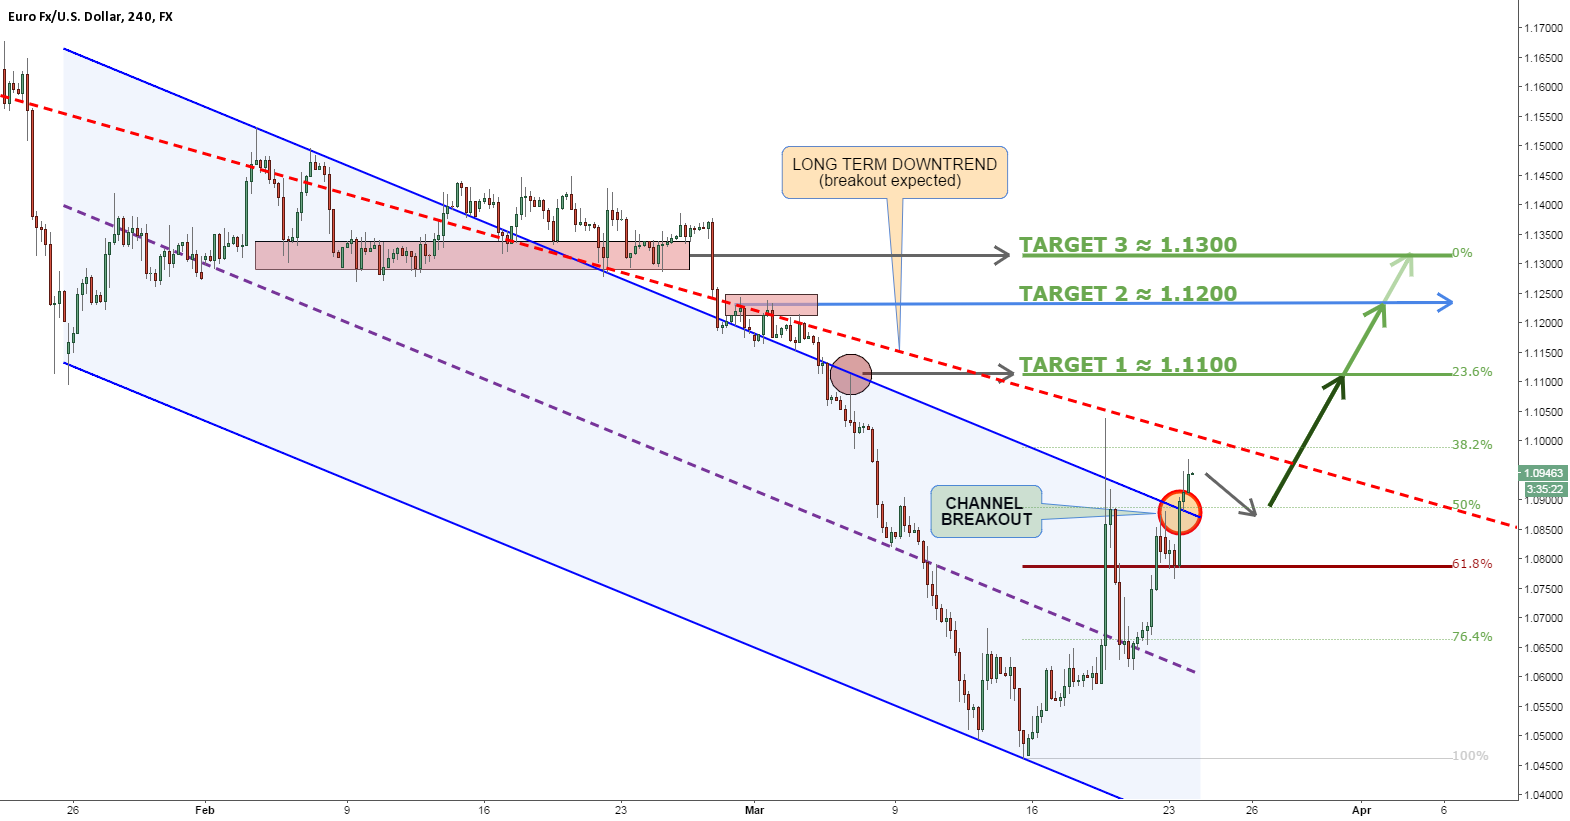 EURUSD FACING NO RESISTANCE